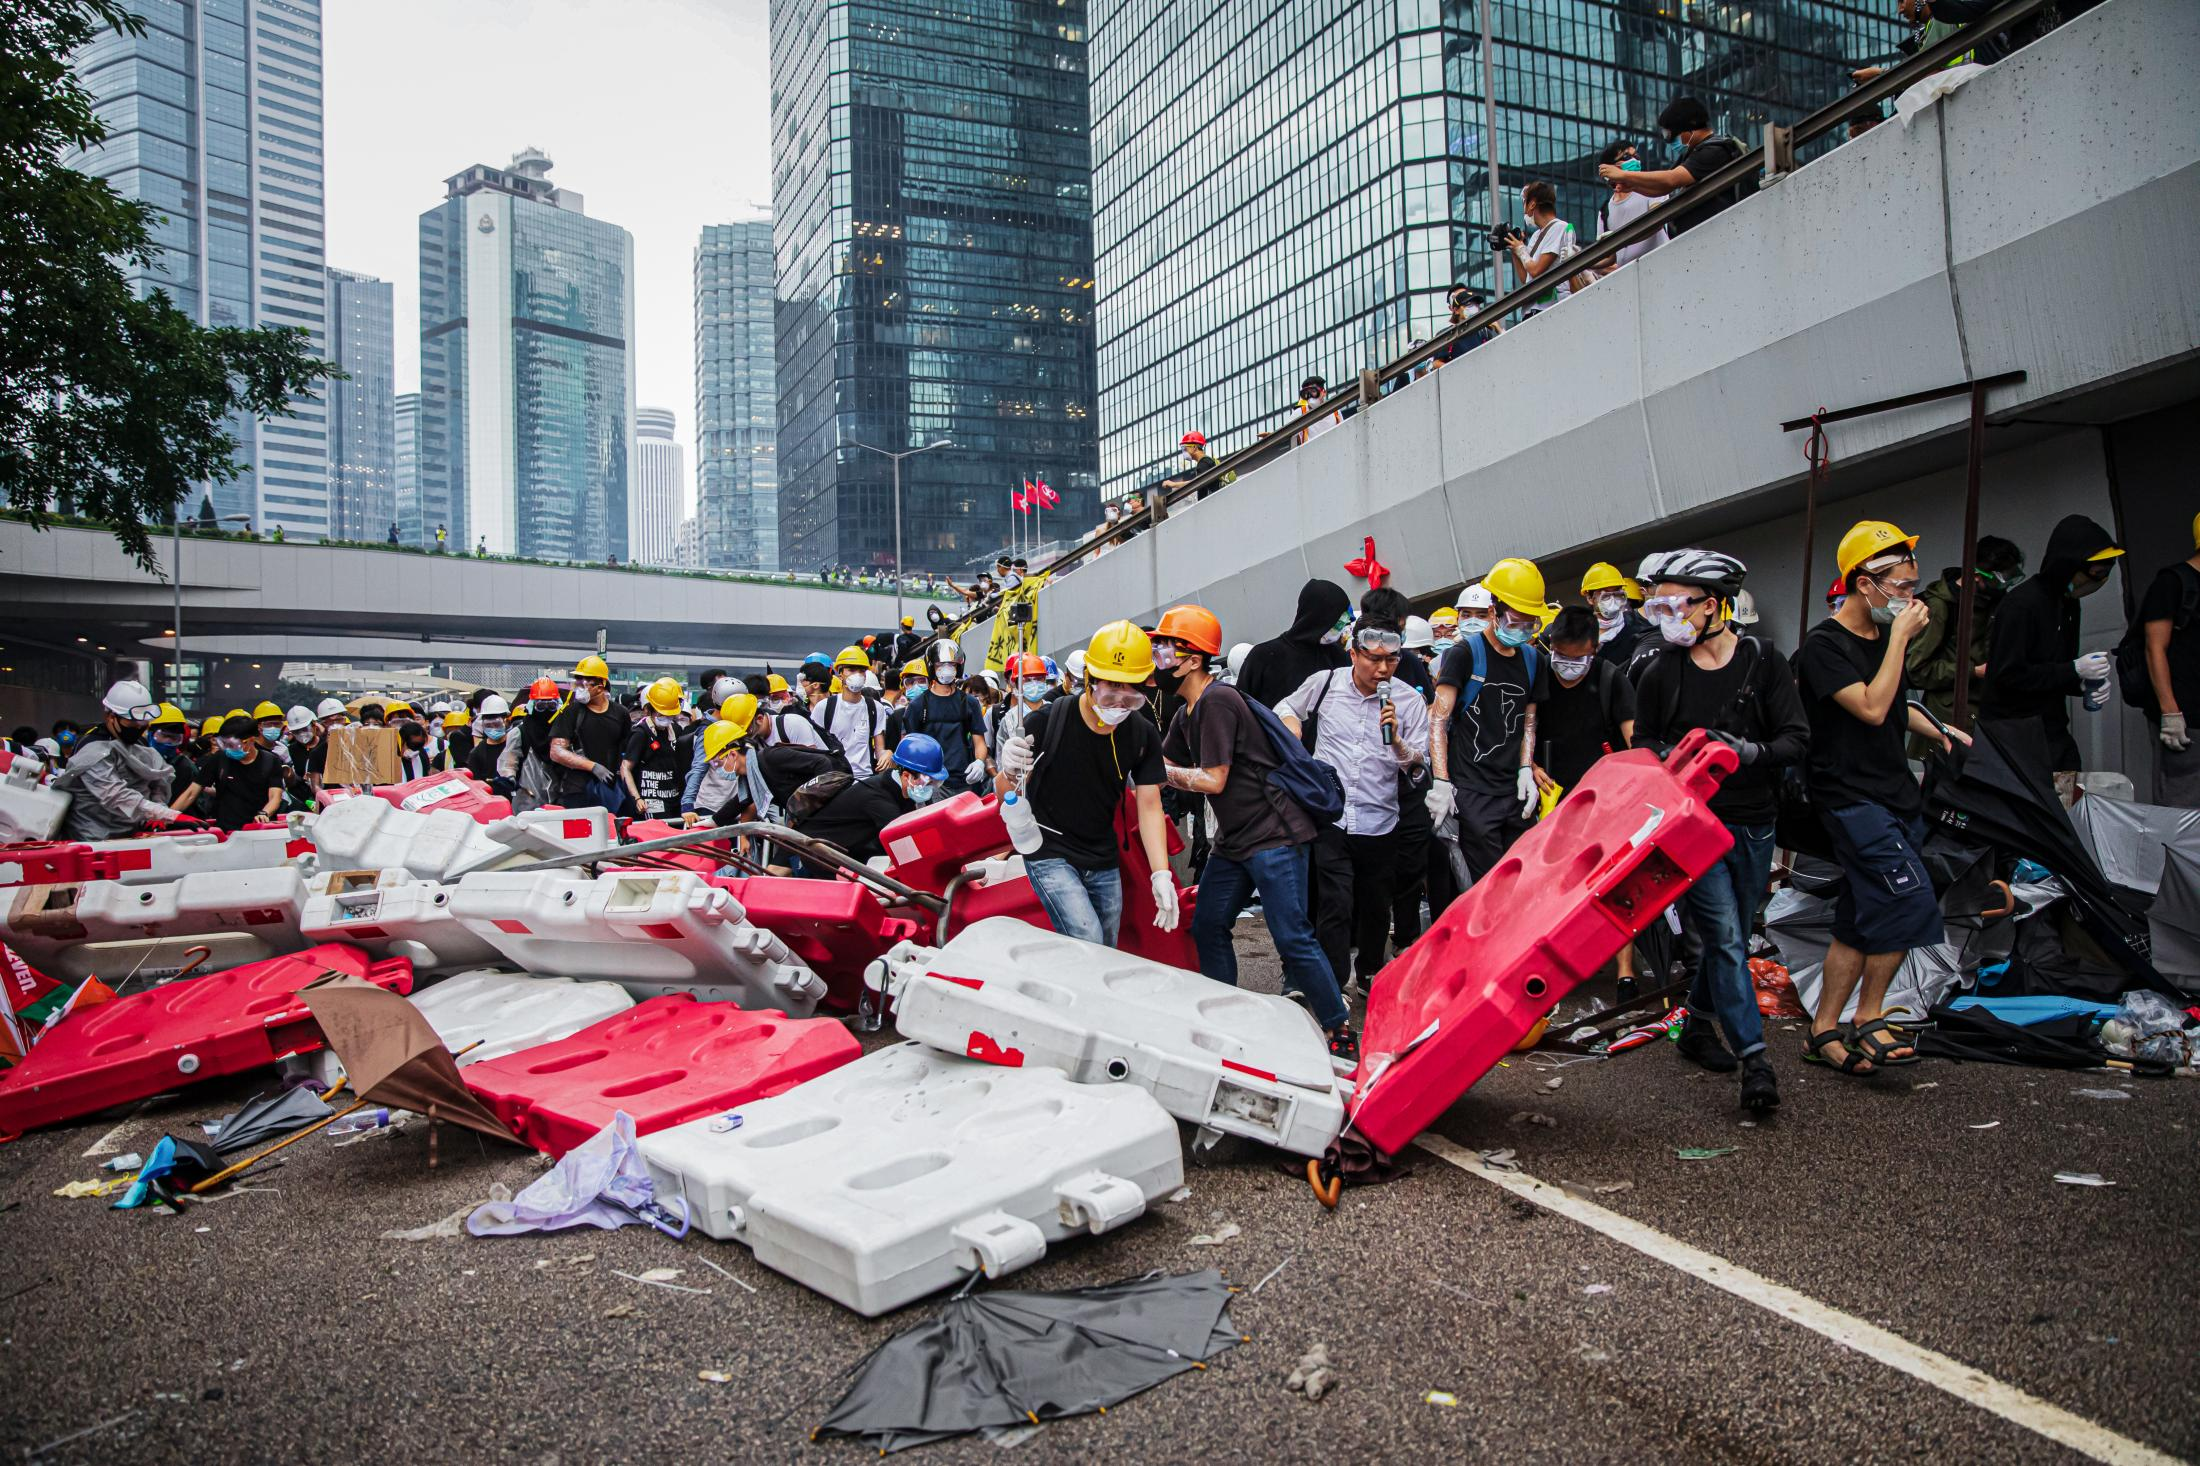 Protesters break down protective barriers to escape a police charge on Harcourt Road, near LegCo. On June 12, there were about half a million people on the streets in a protest that surrounded LegCo to prevent deputies from entering to discuss the extradition bill. Law enforcement officials respond with batons, pepper spray and tear gas to disperse the protesters.